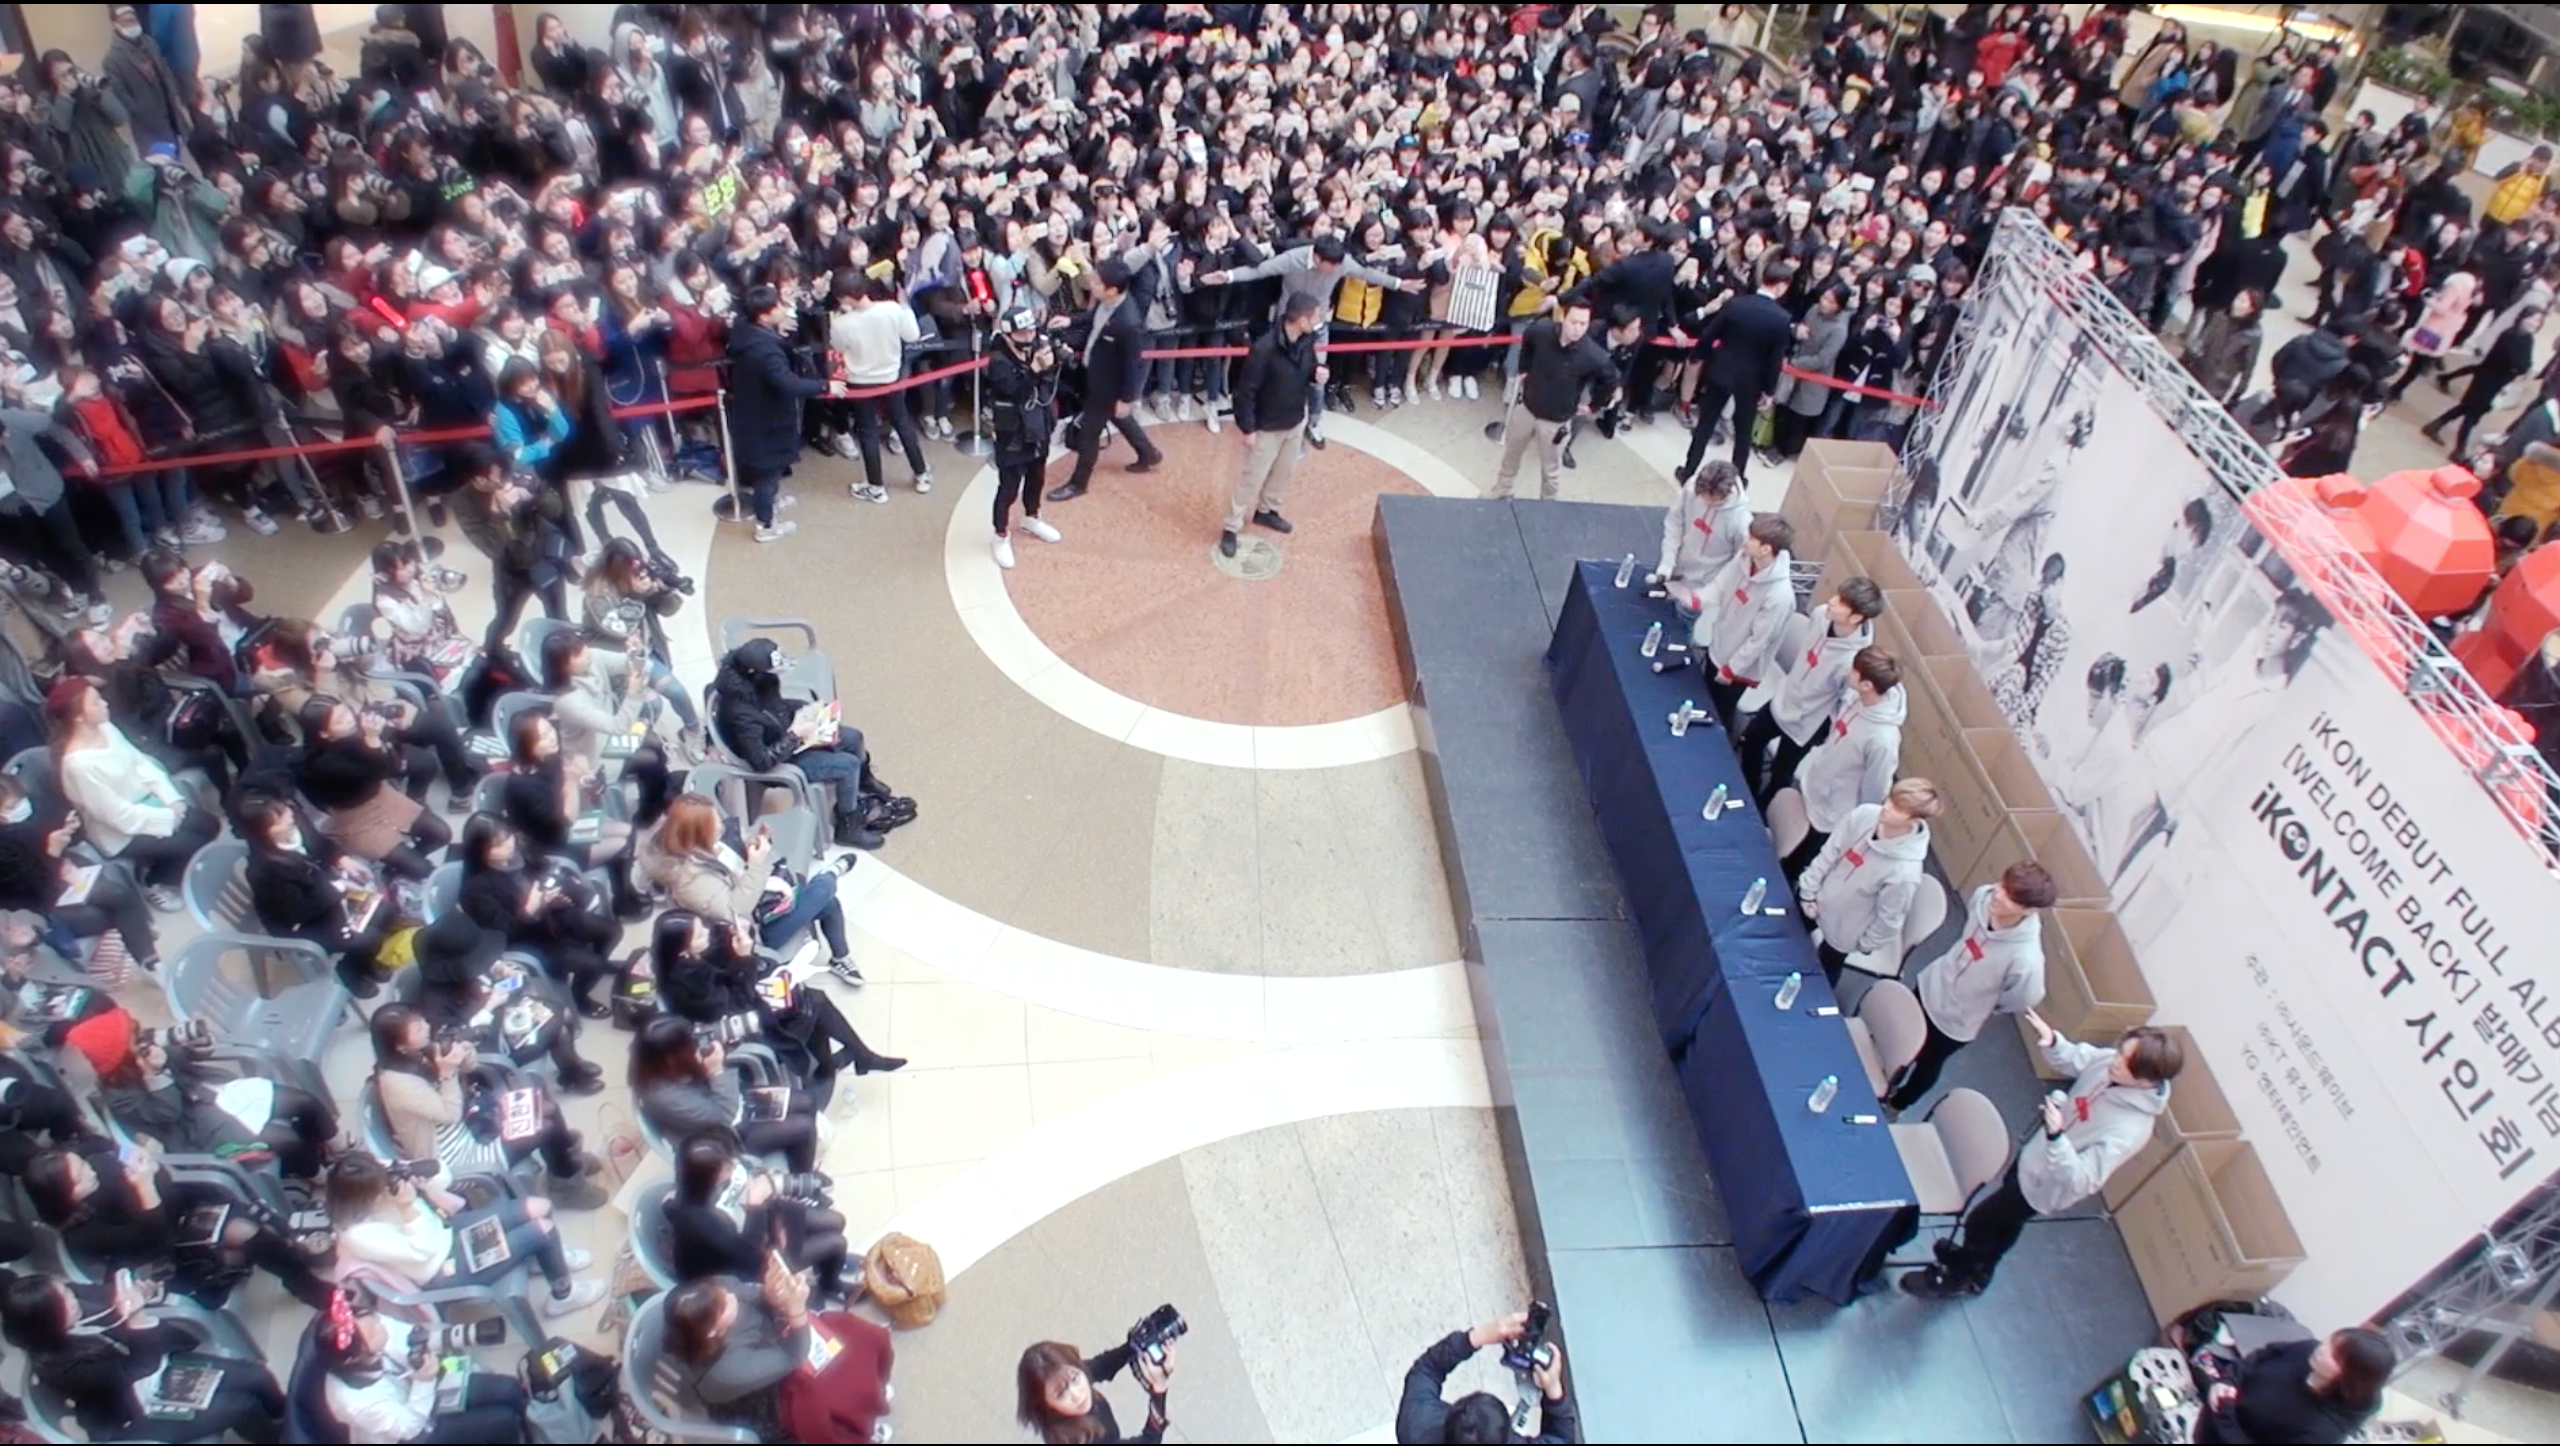 iKON - 'iKONTACT' FAN SIGNING DAY IN BUNDANG